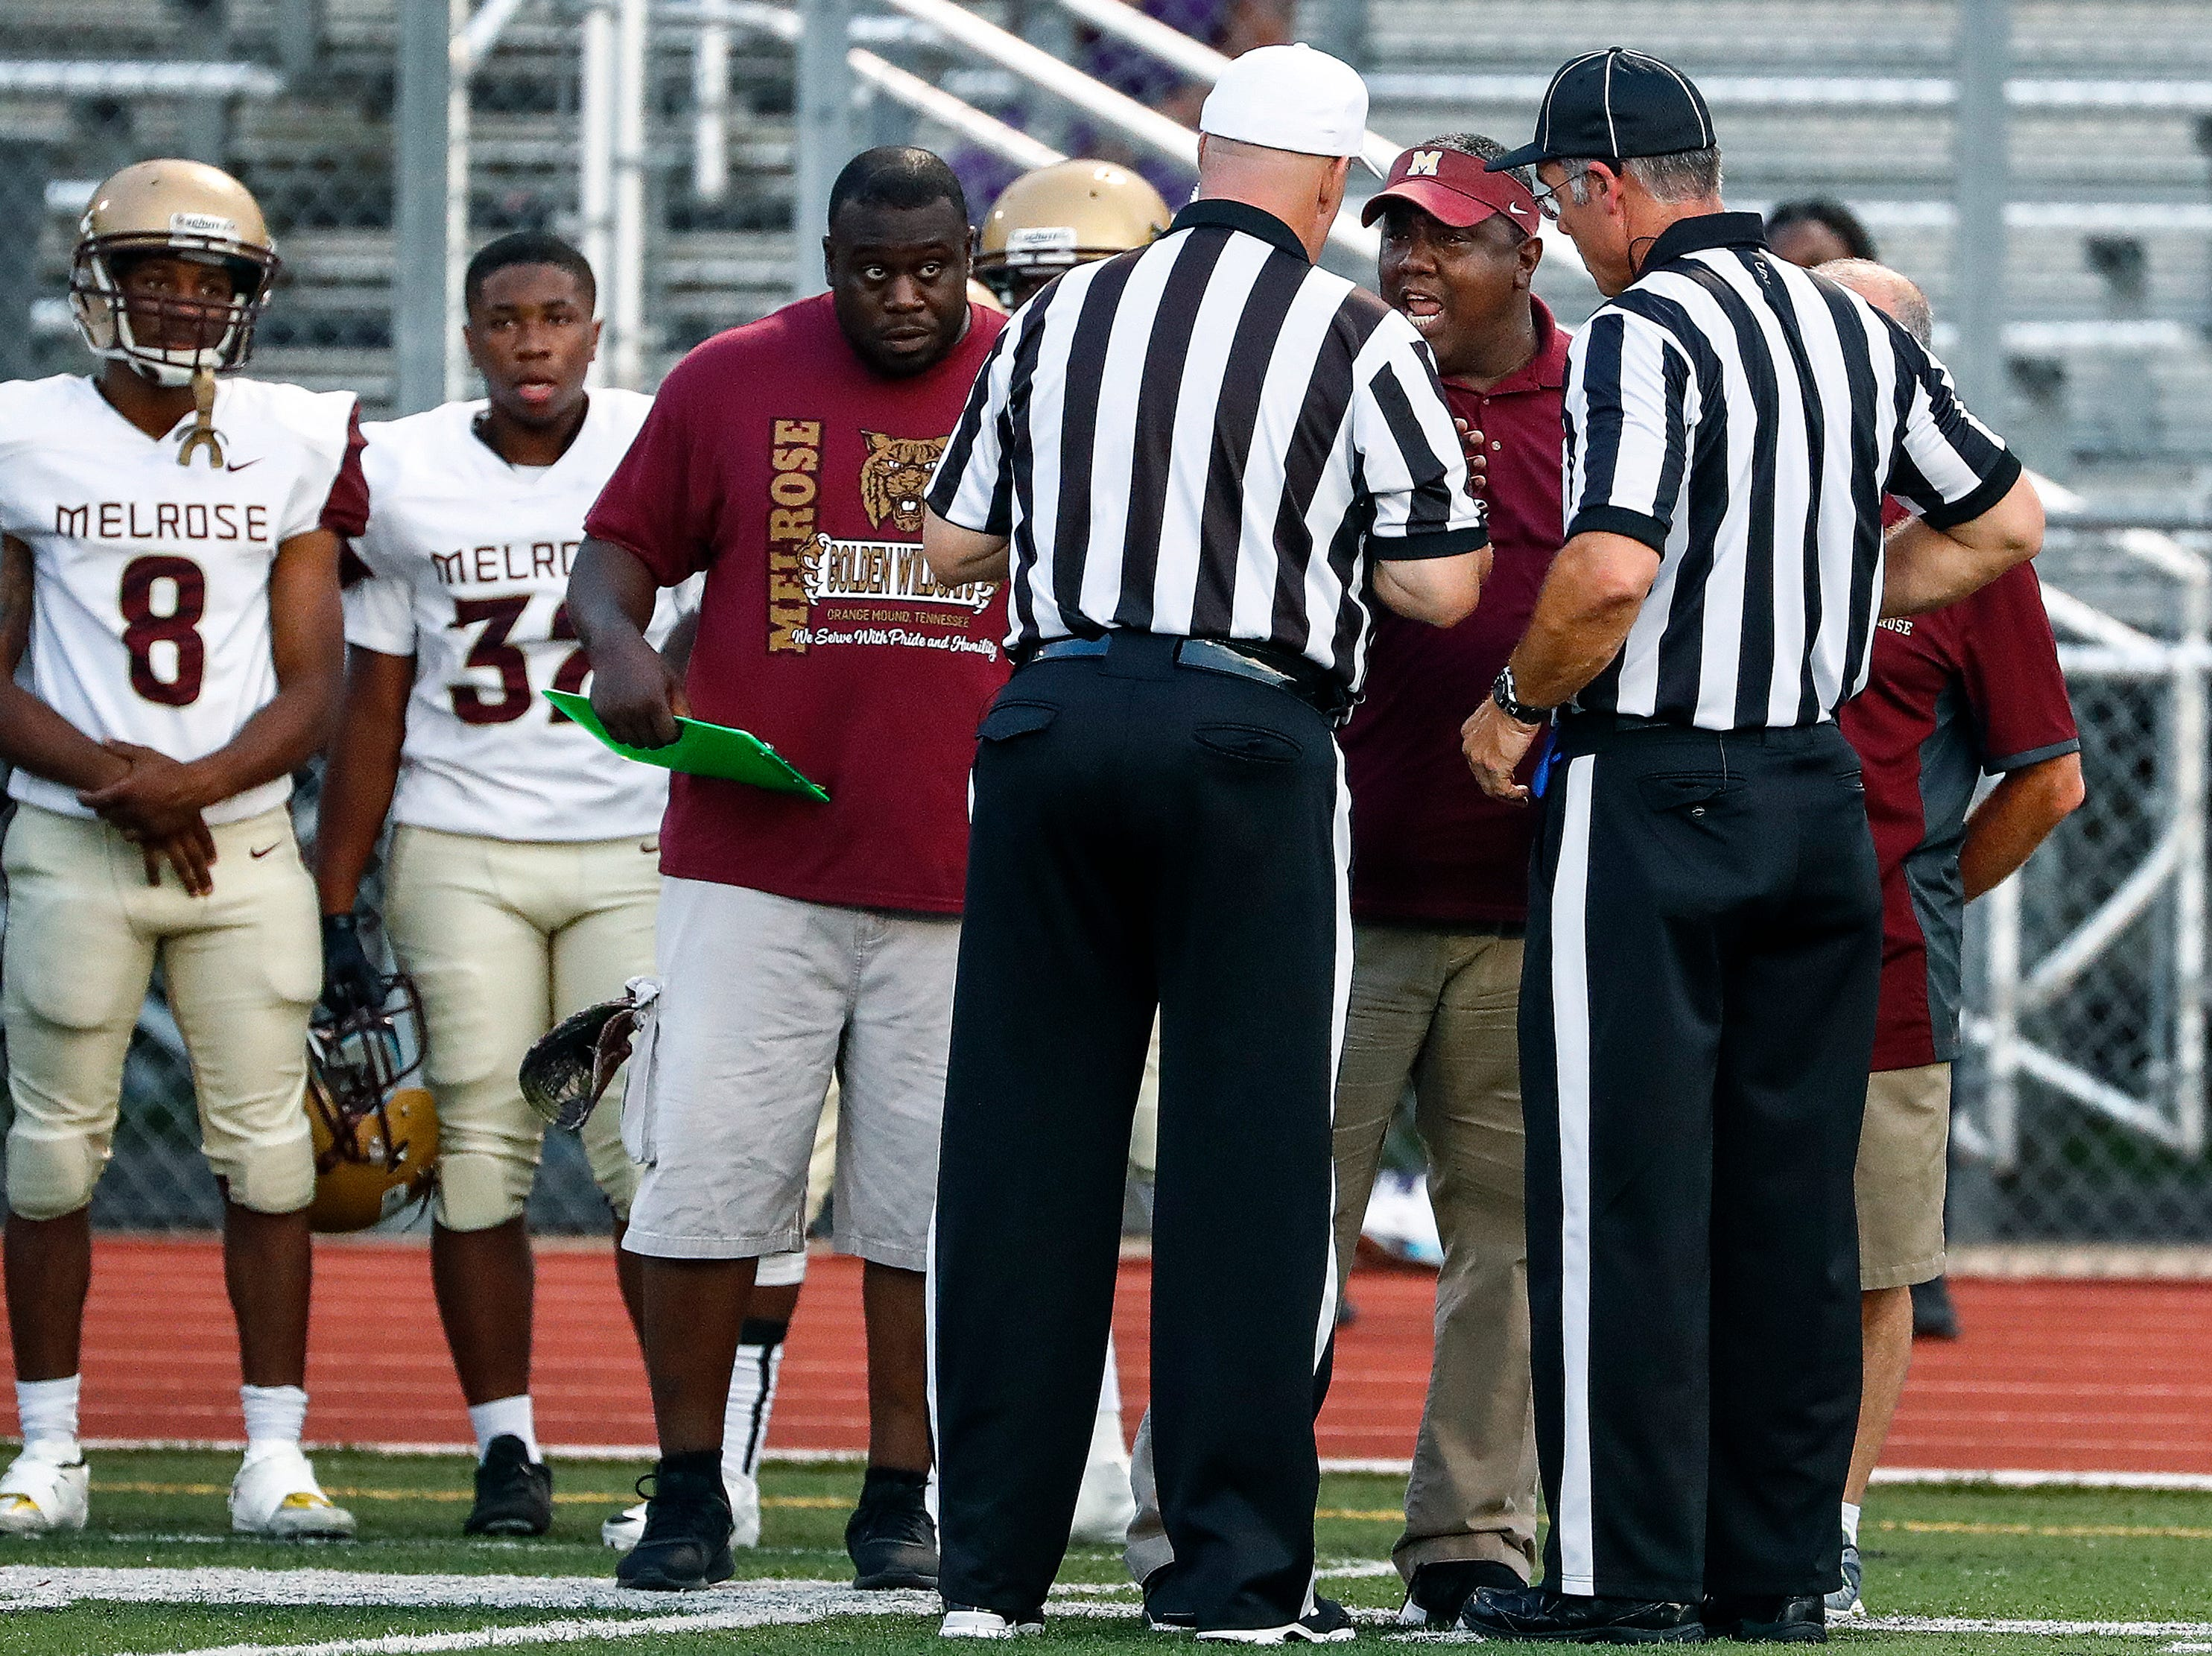 Melrose head coach Ronald Davis (middle) talks with the officials during the season opener against Central on Friday, Aug. 17, 2018, at Crump Stadium.